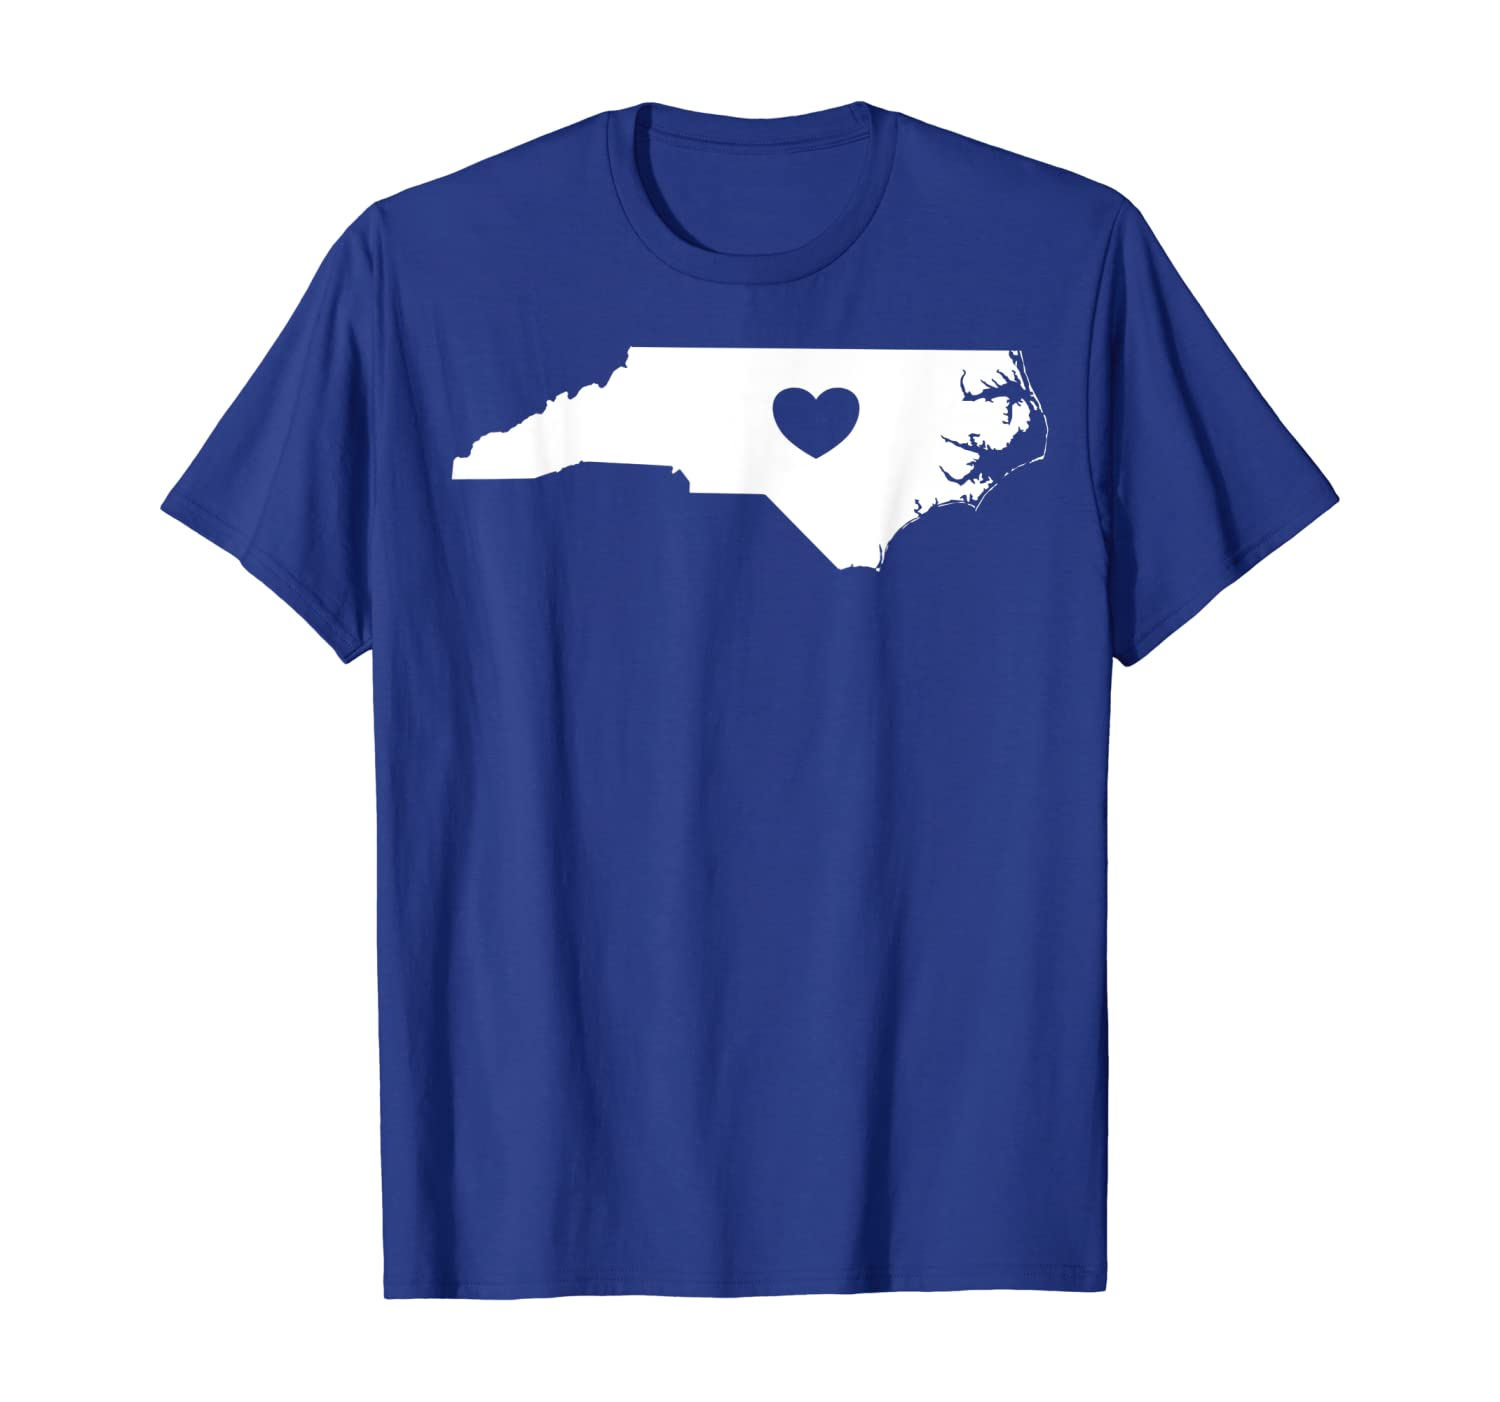 North Carolina Heart State Silhouette T-Shirt